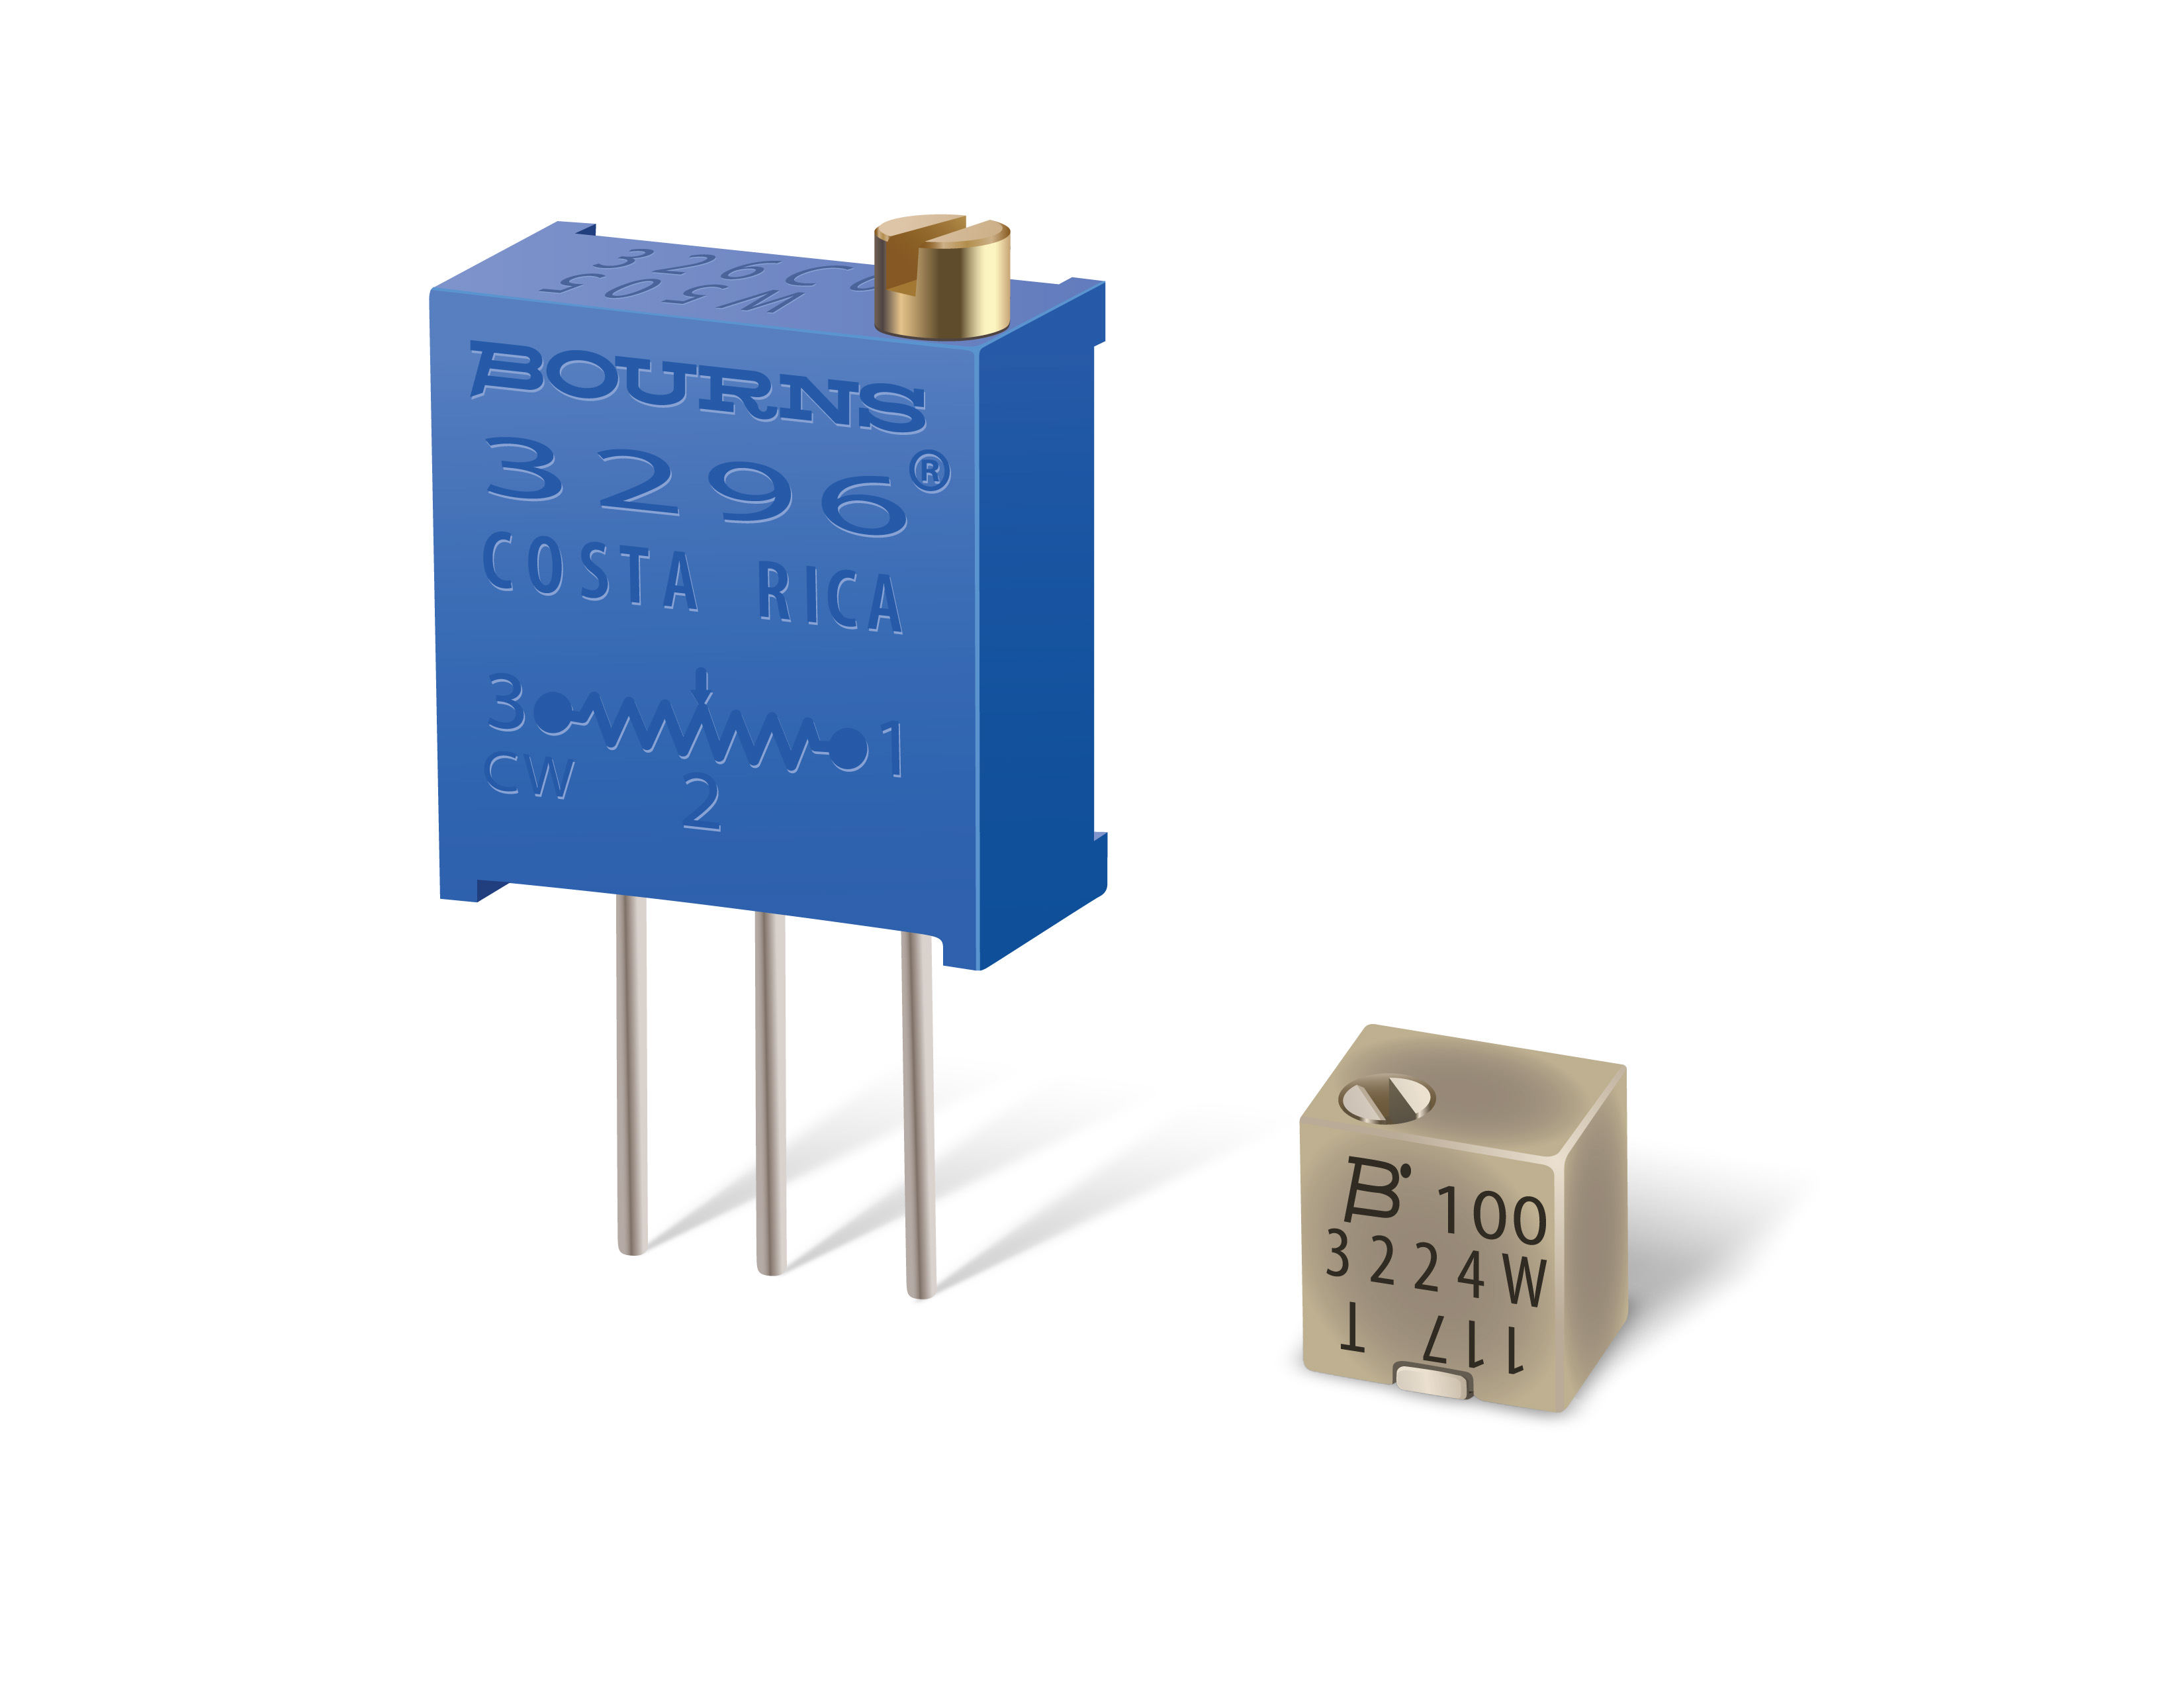 Bourns - Bourns New Trimming Potentiometers Offer